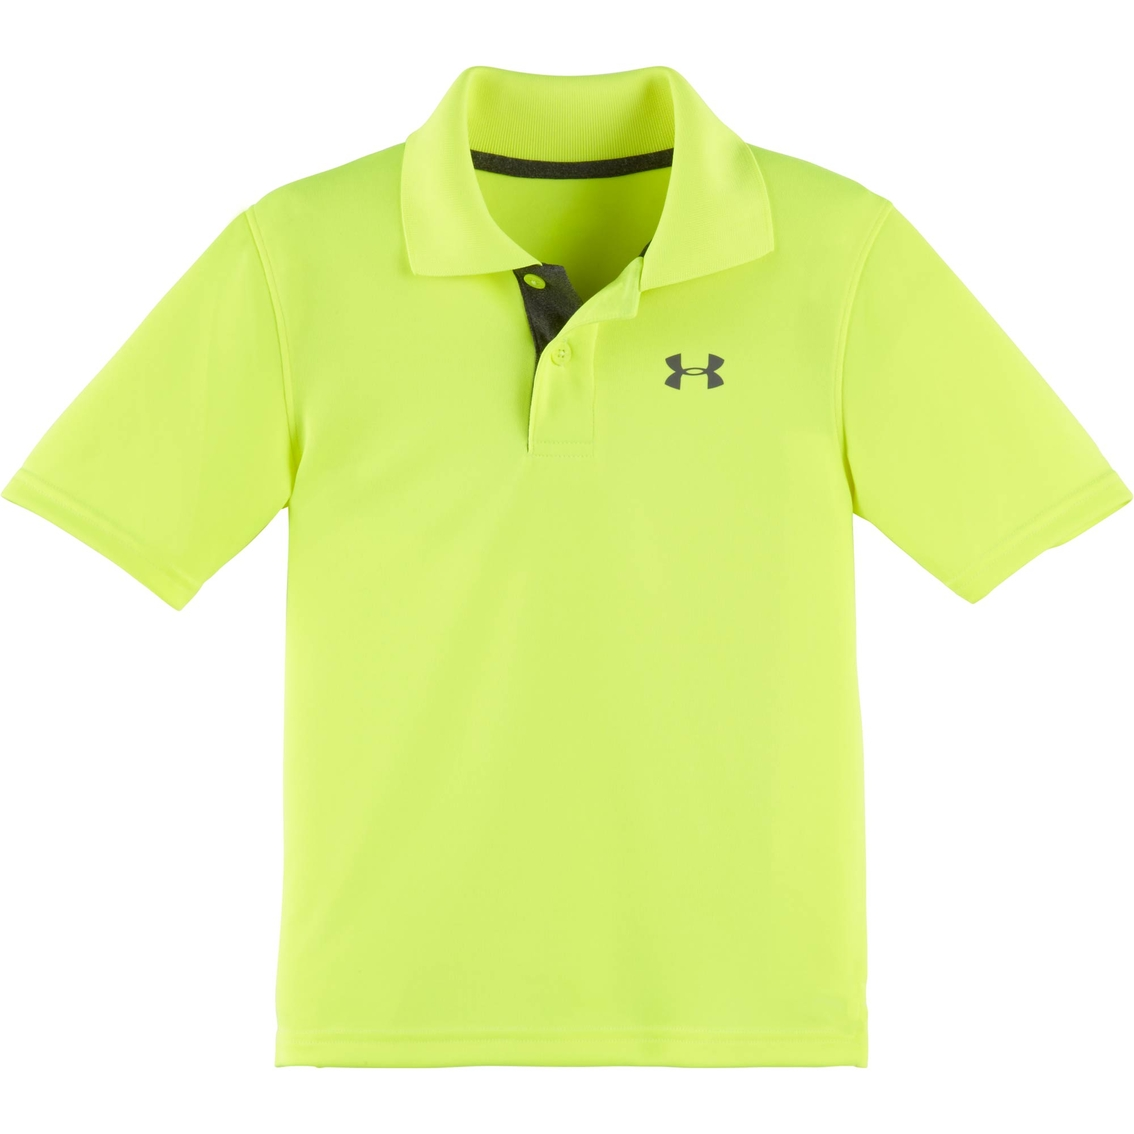 e6c58770a Under Armour Toddler Boys Match Play Polo Shirt